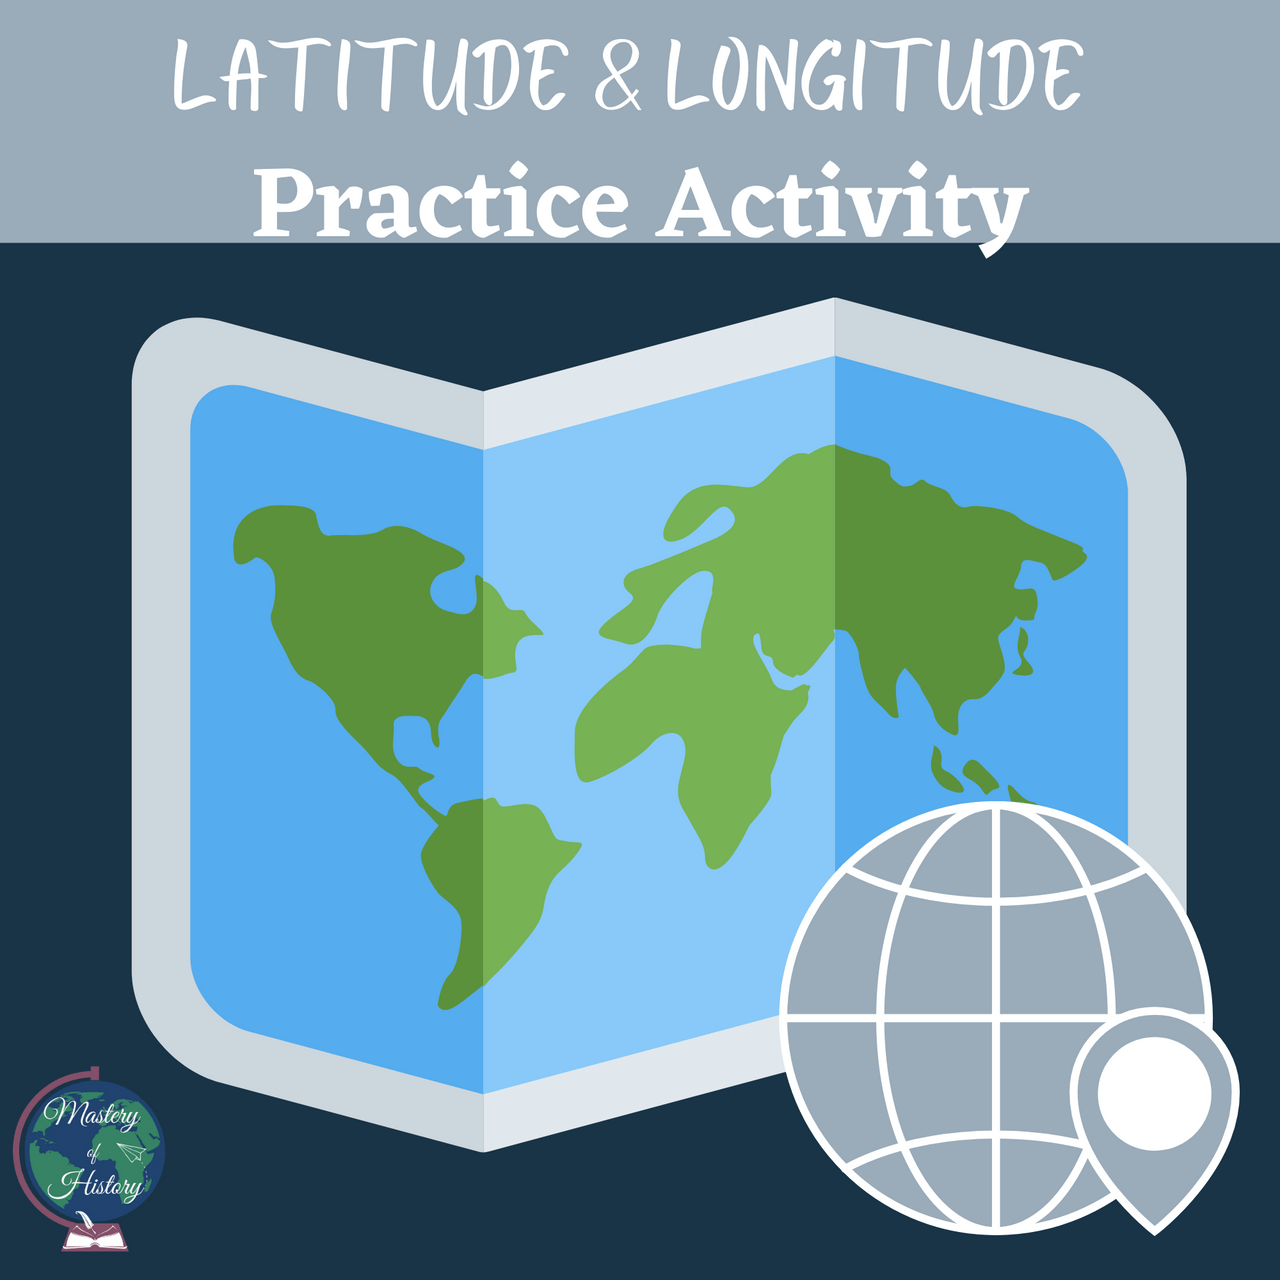 Latitude \u0026 Longitude Practice Worksheets - Amped Up Learning [ 1280 x 1280 Pixel ]